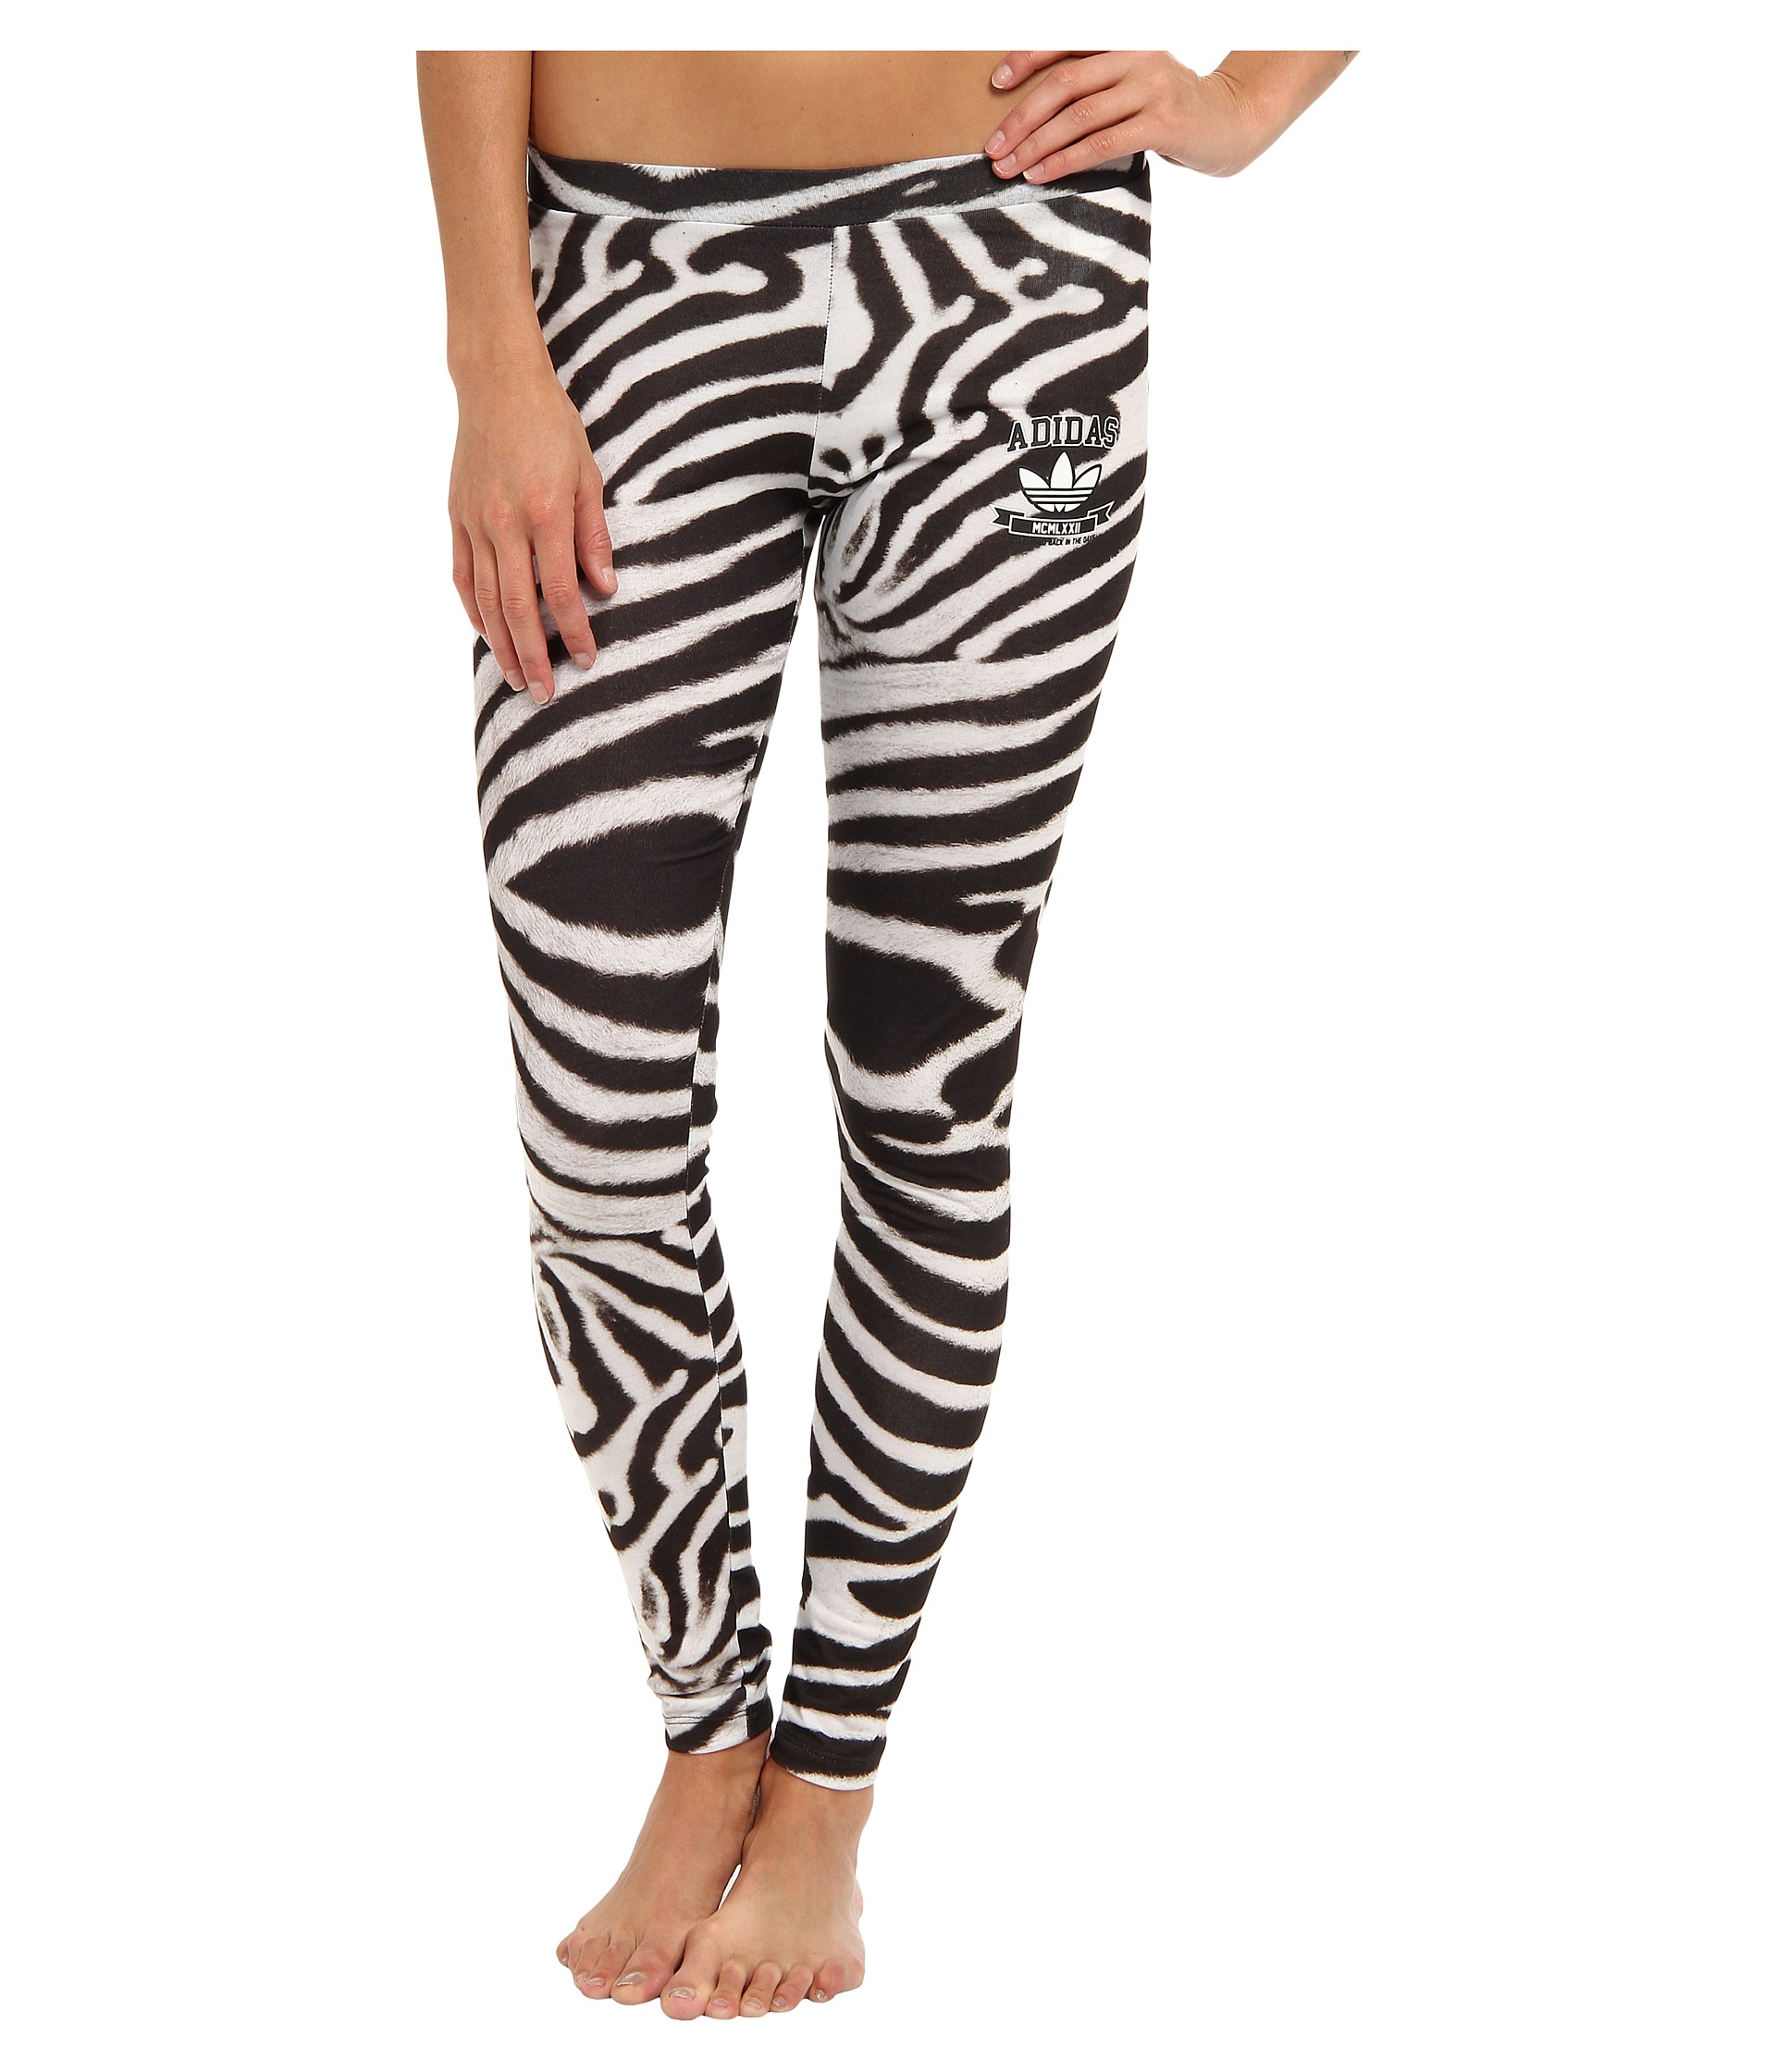 Zebra Print Clothing For Men, Women & Kids. Posted on by KM Fun Zebra Print Clothing For The Whole Family. Zebra print clothing looks nice on everybody and it's a lot of fun. Try it and show your wild side. Zebra Print Leggings. These zebra leggings would look great with a .